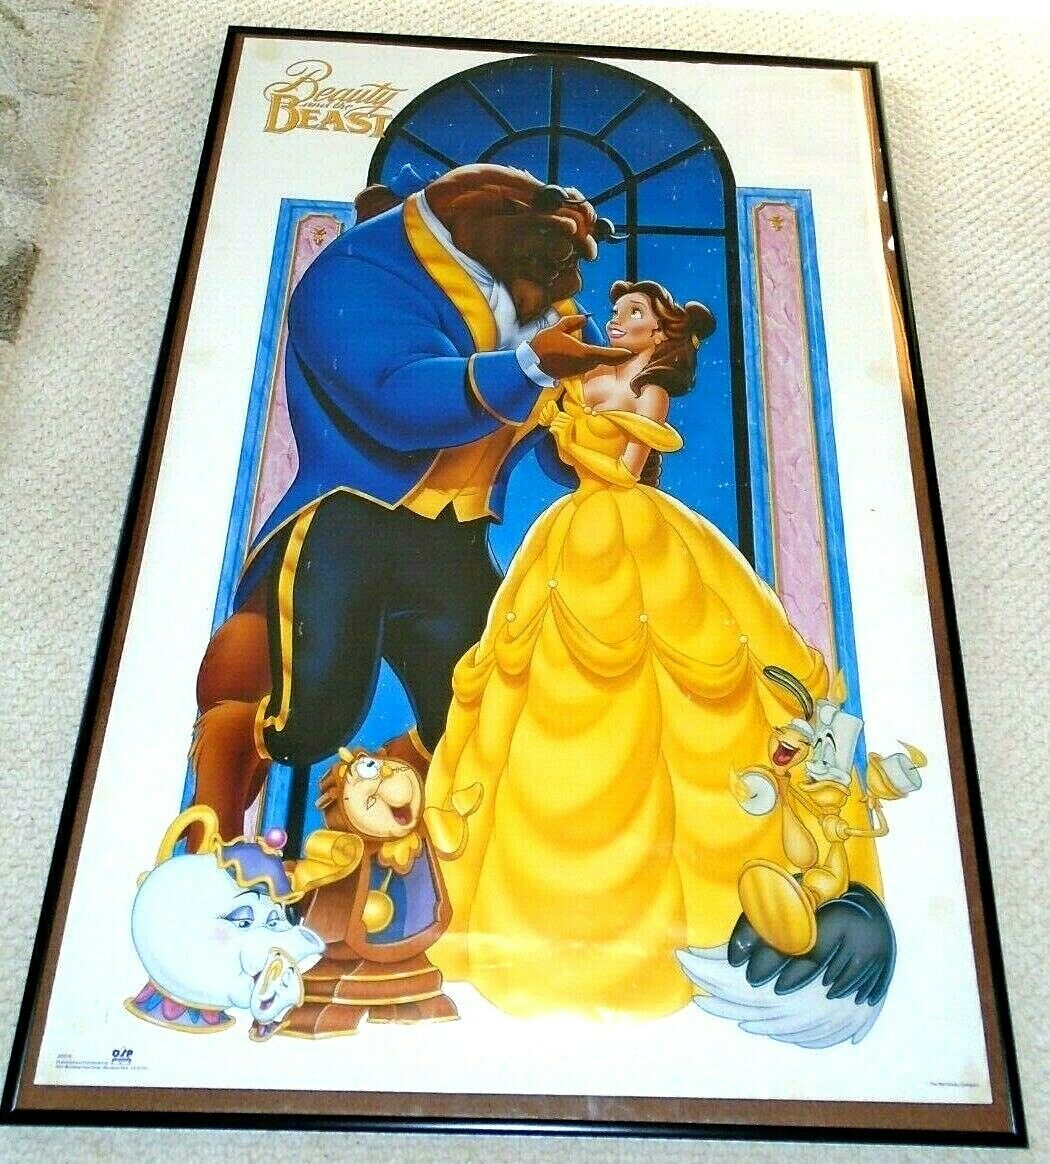 1990s Vintage Beauty and The Beast Poster by OSP Publishing 1991 22 x 30